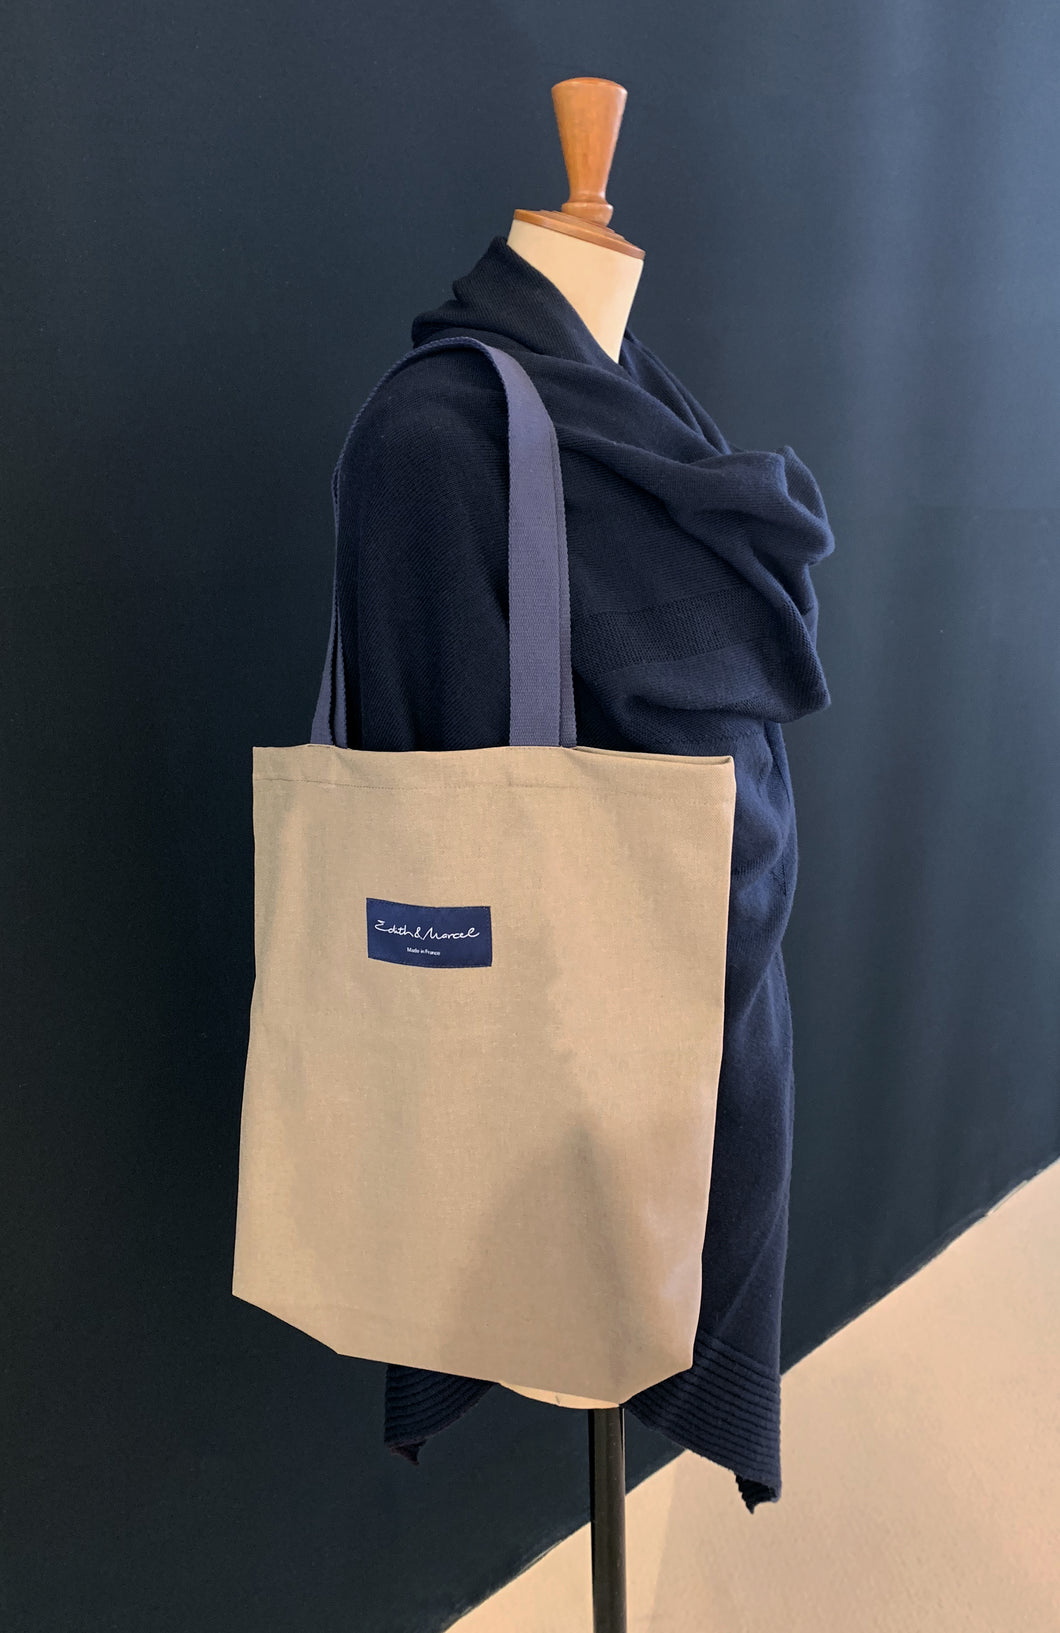 Tote-bag solidaire